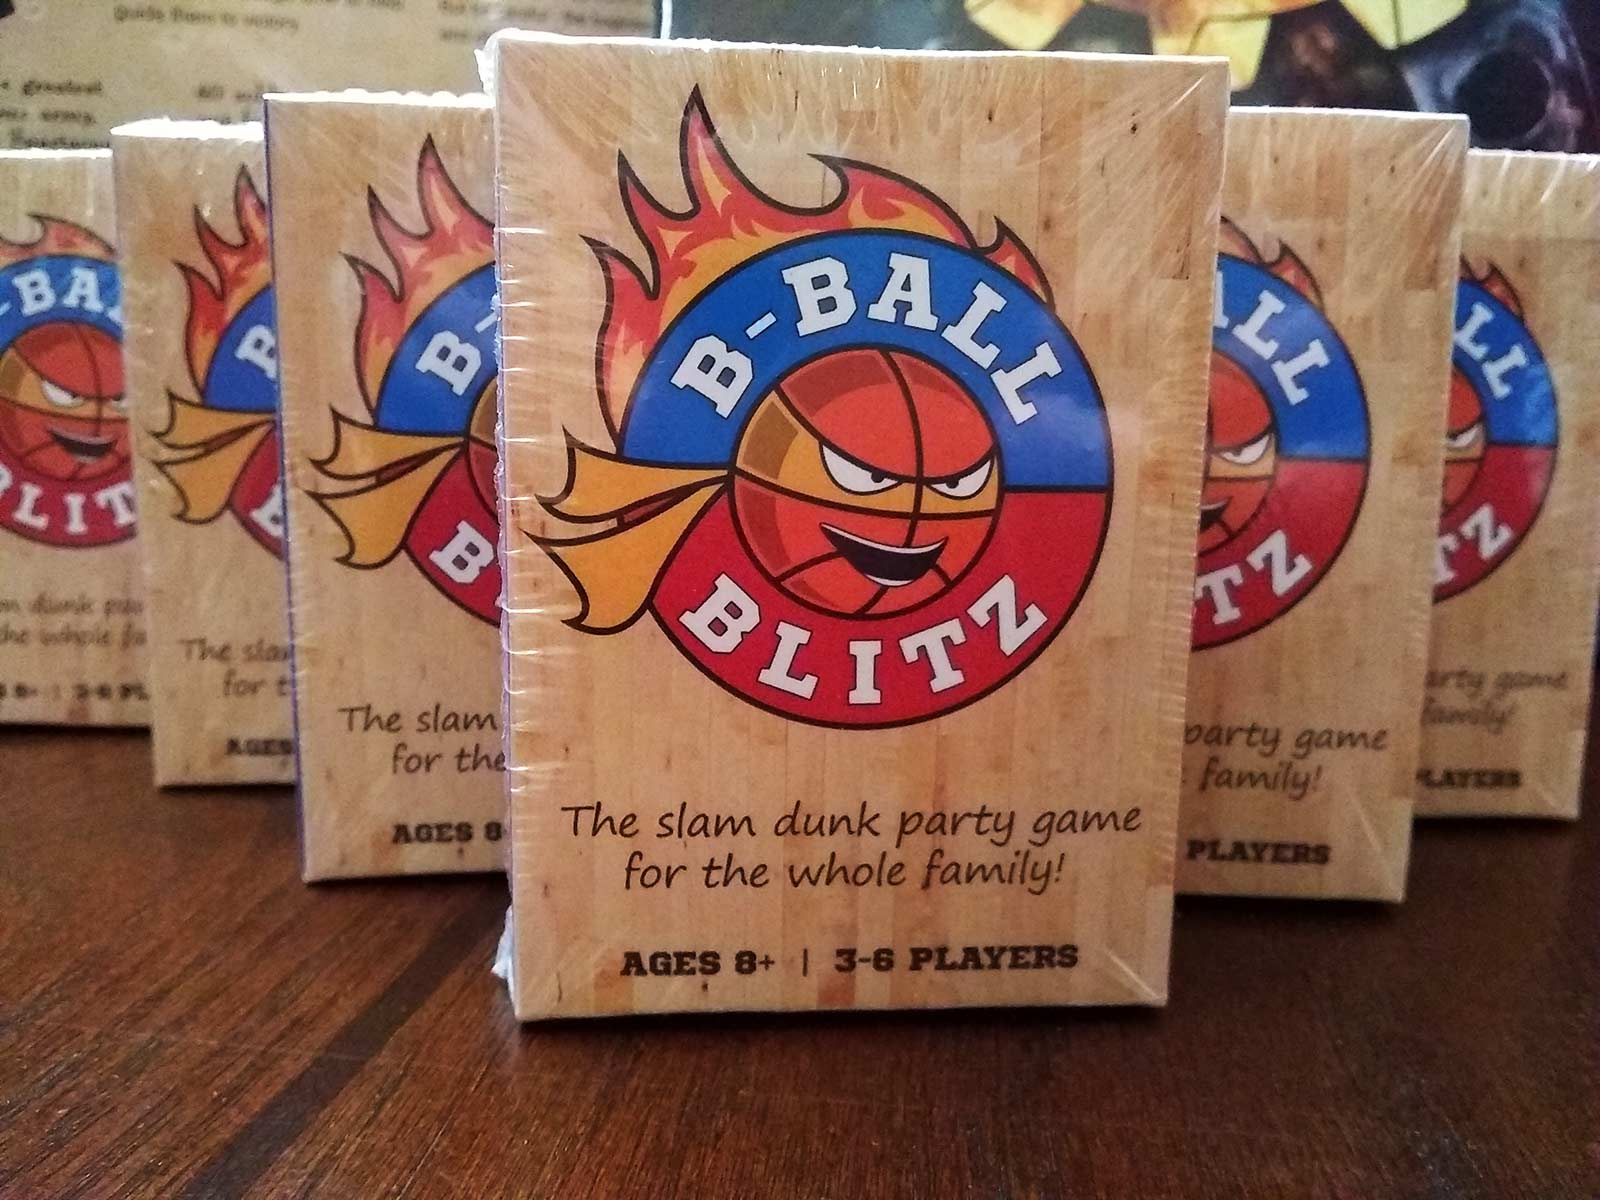 b-ball blitz card game packaging